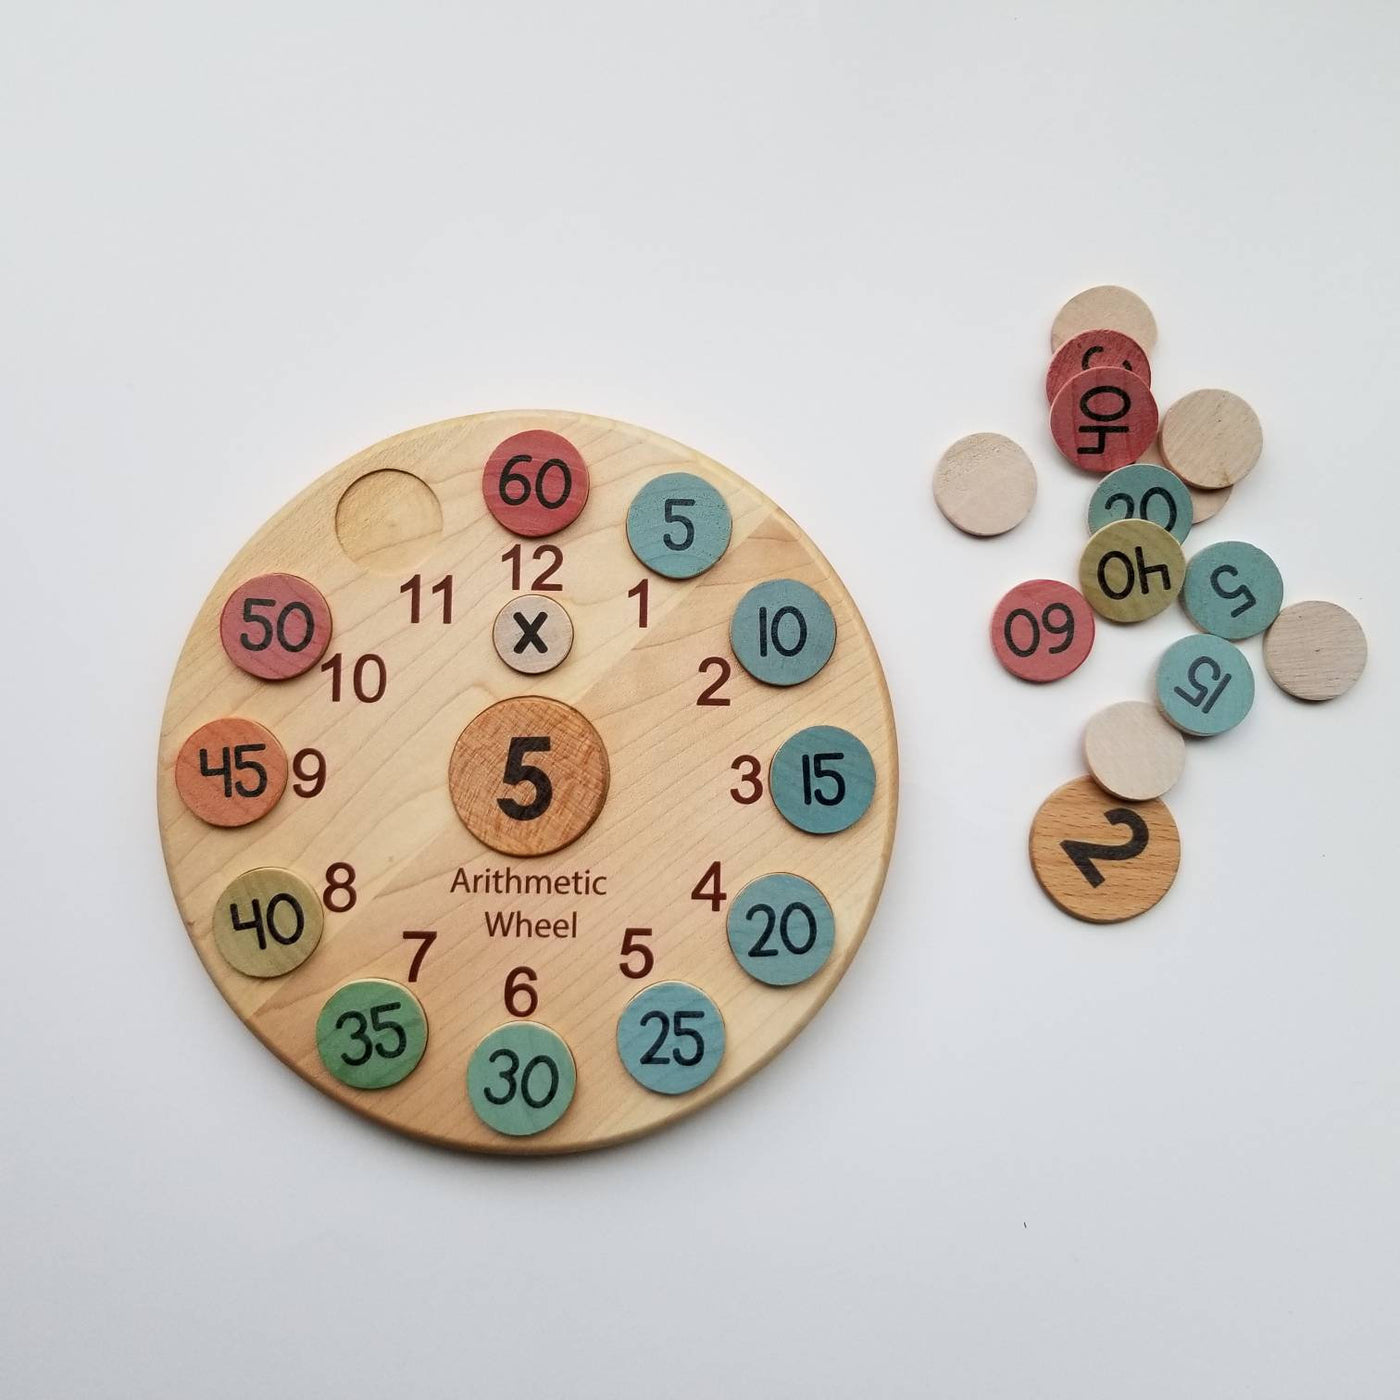 Arithmetic wheel, multiplication wheel, Multiplication board, addition wheel, homeschool math, Montessori materials, multiplication table